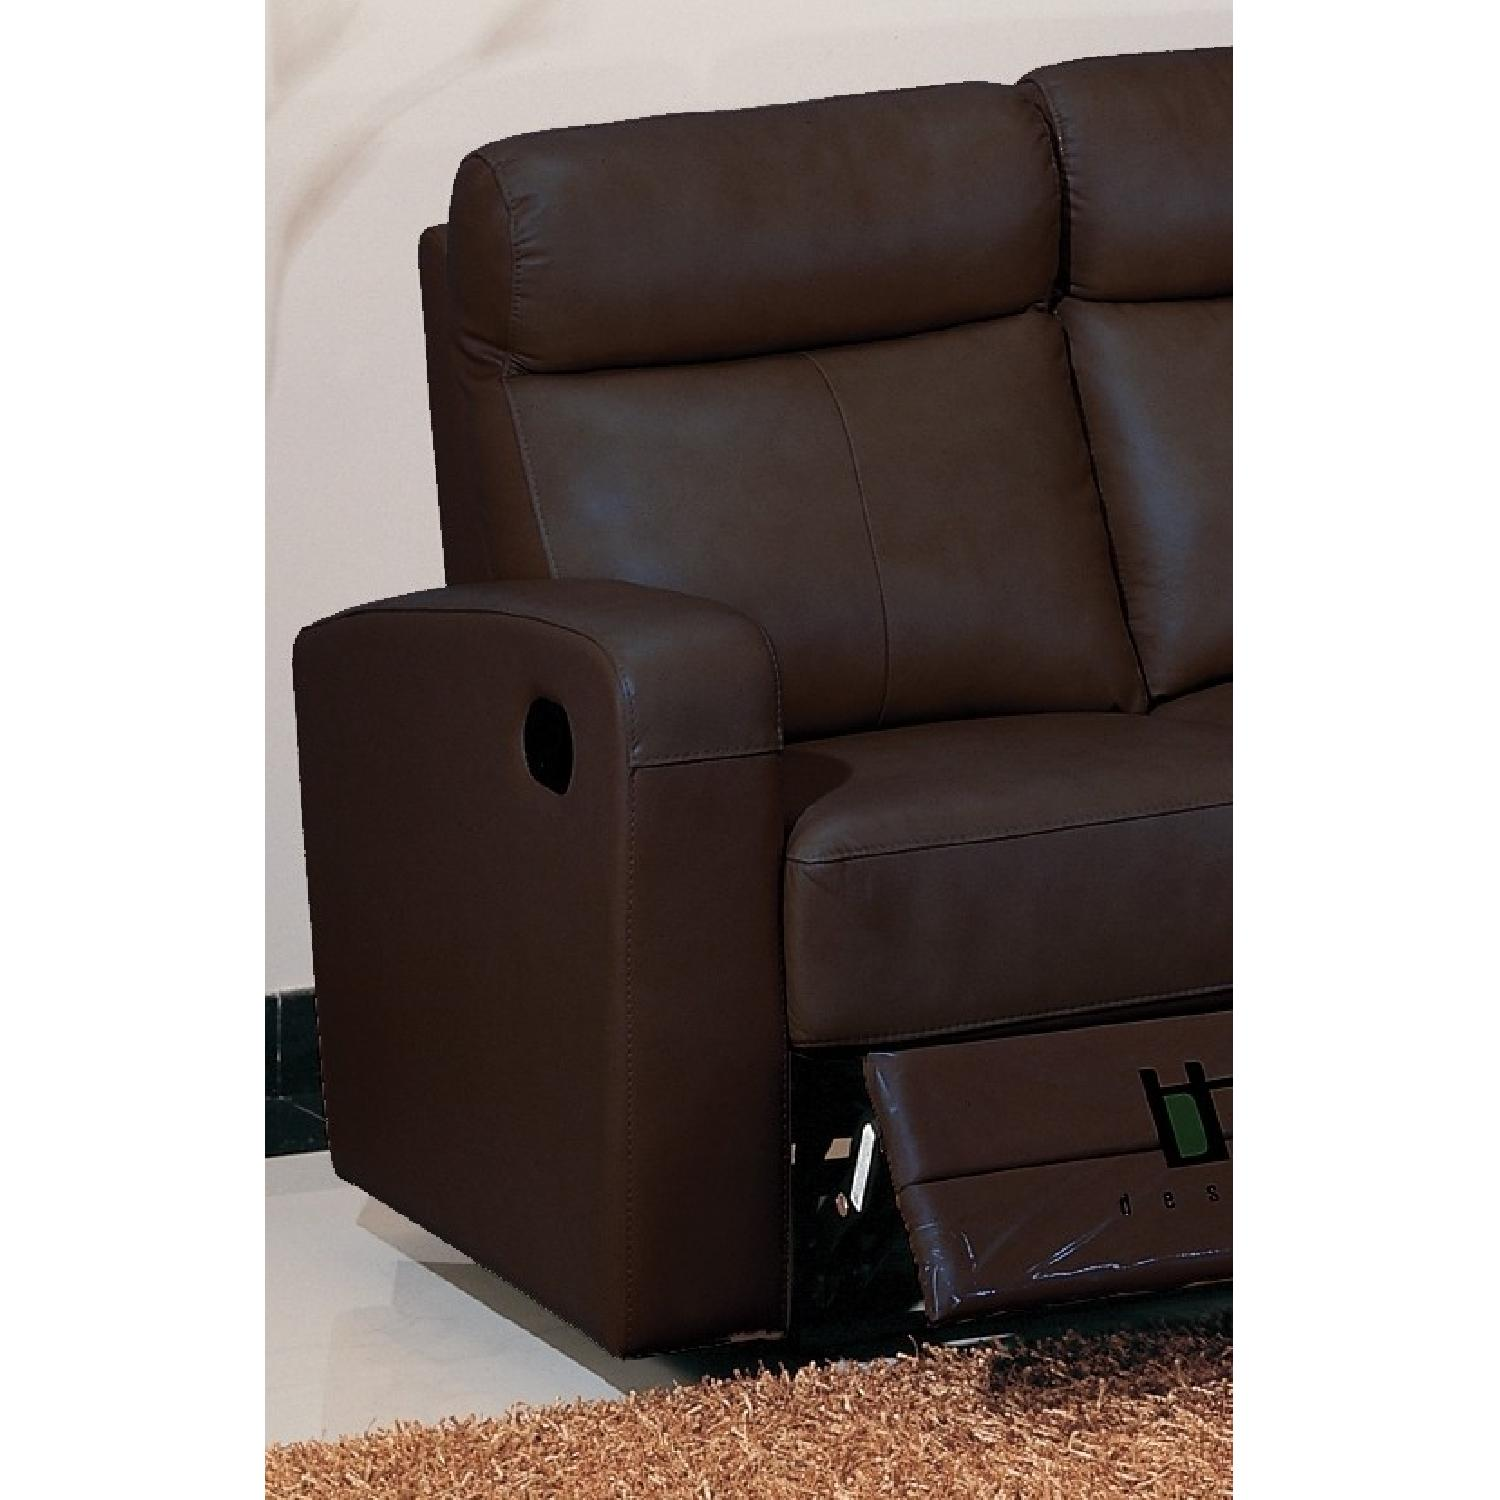 Apartment Size Recliner Loveseat in Brown Top Grain - AptDeco